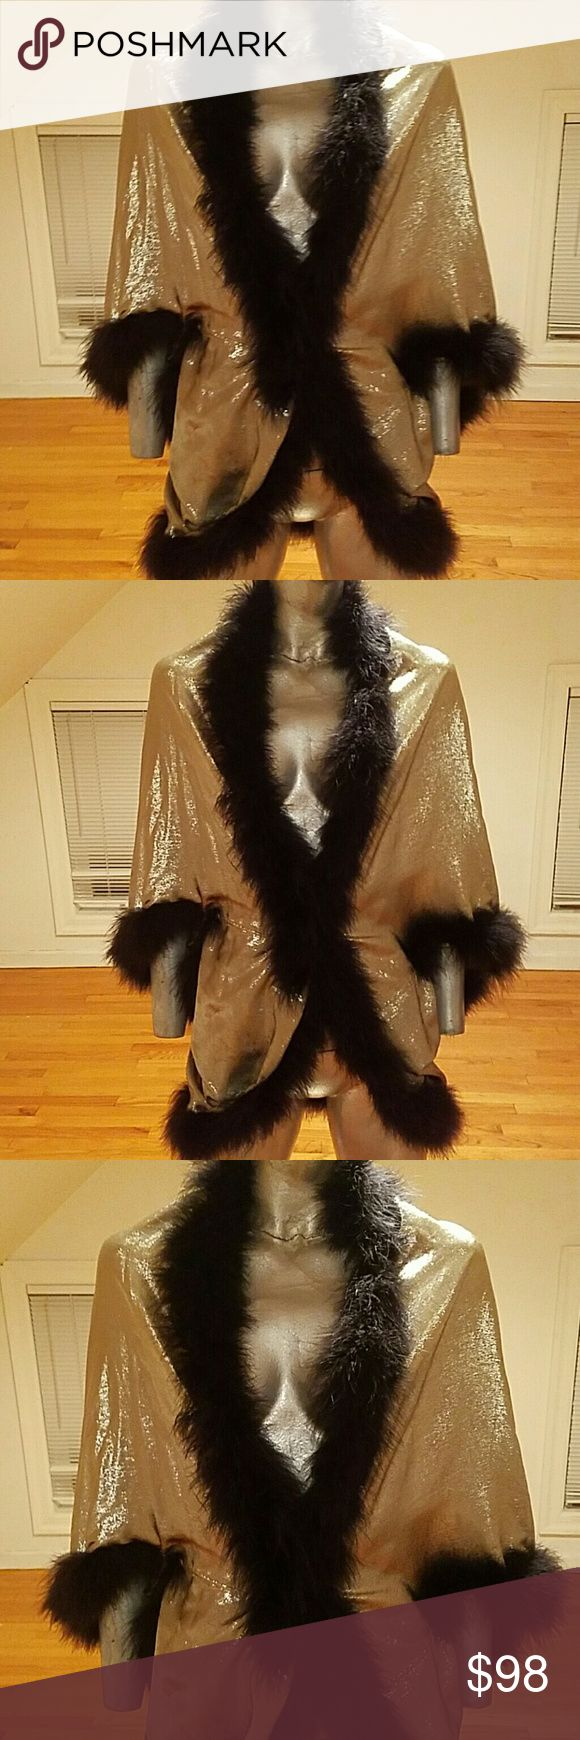 Vintage Silver Lame' Marabou feather Opera Wrap Jk This one is an absolute must have for the Hobo Chic in you. all silver Lame' adorned by Marabou feather all over Trim. by  Sylvia Betts Cher of Philadelphia,Pa. Sylvia Beitscher Jackets & Coats Capes